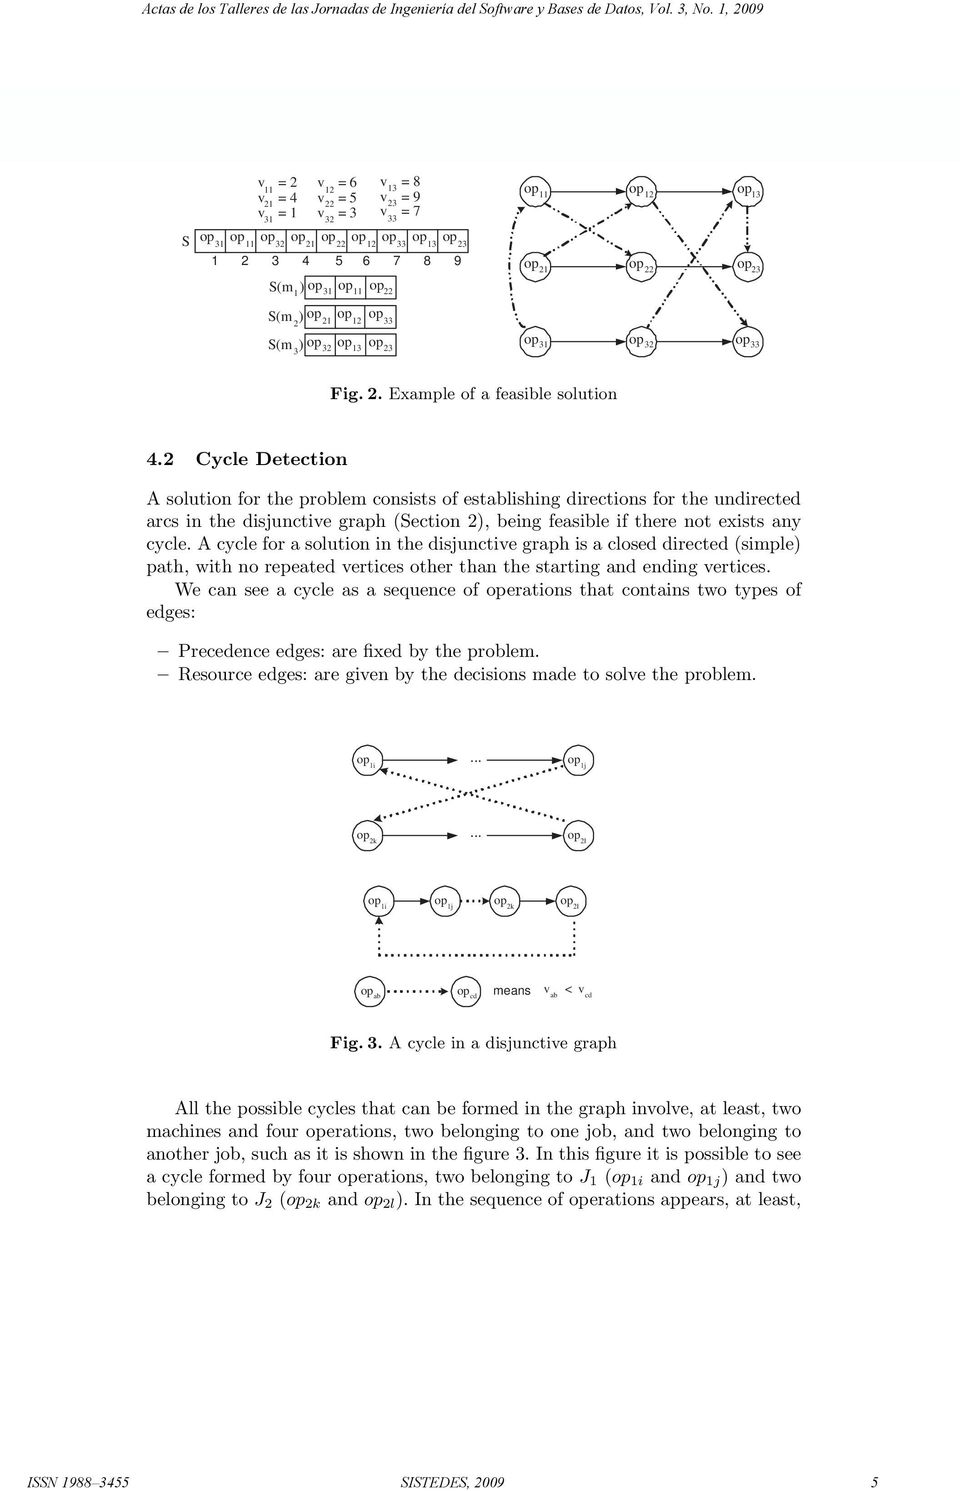 2 Cycle Detection A solution for the problem consists of establishing directions for the undirected arcs in the disjunctive graph (Section 2), being feasible if there not exists any cycle.